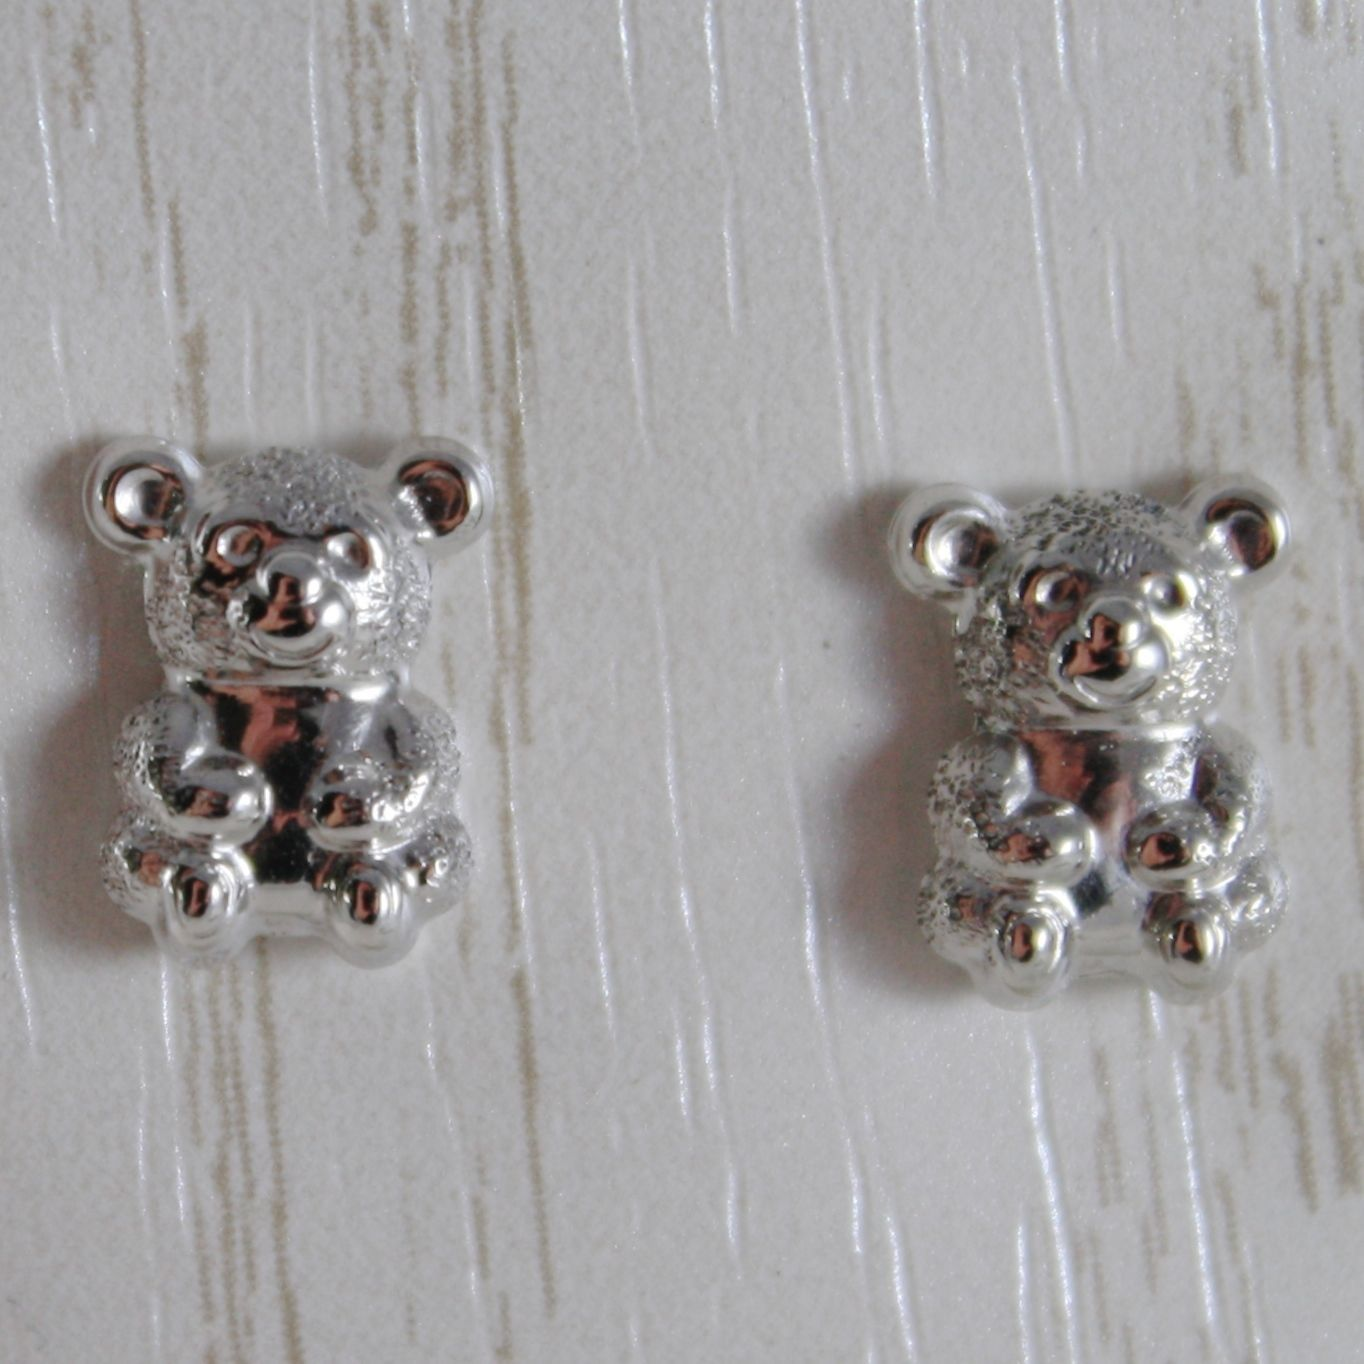 18K WHITE GOLD EARRINGS WITH MINI SATIN BEAR BEARS FOR KIDS CHILD, MADE IN ITALY